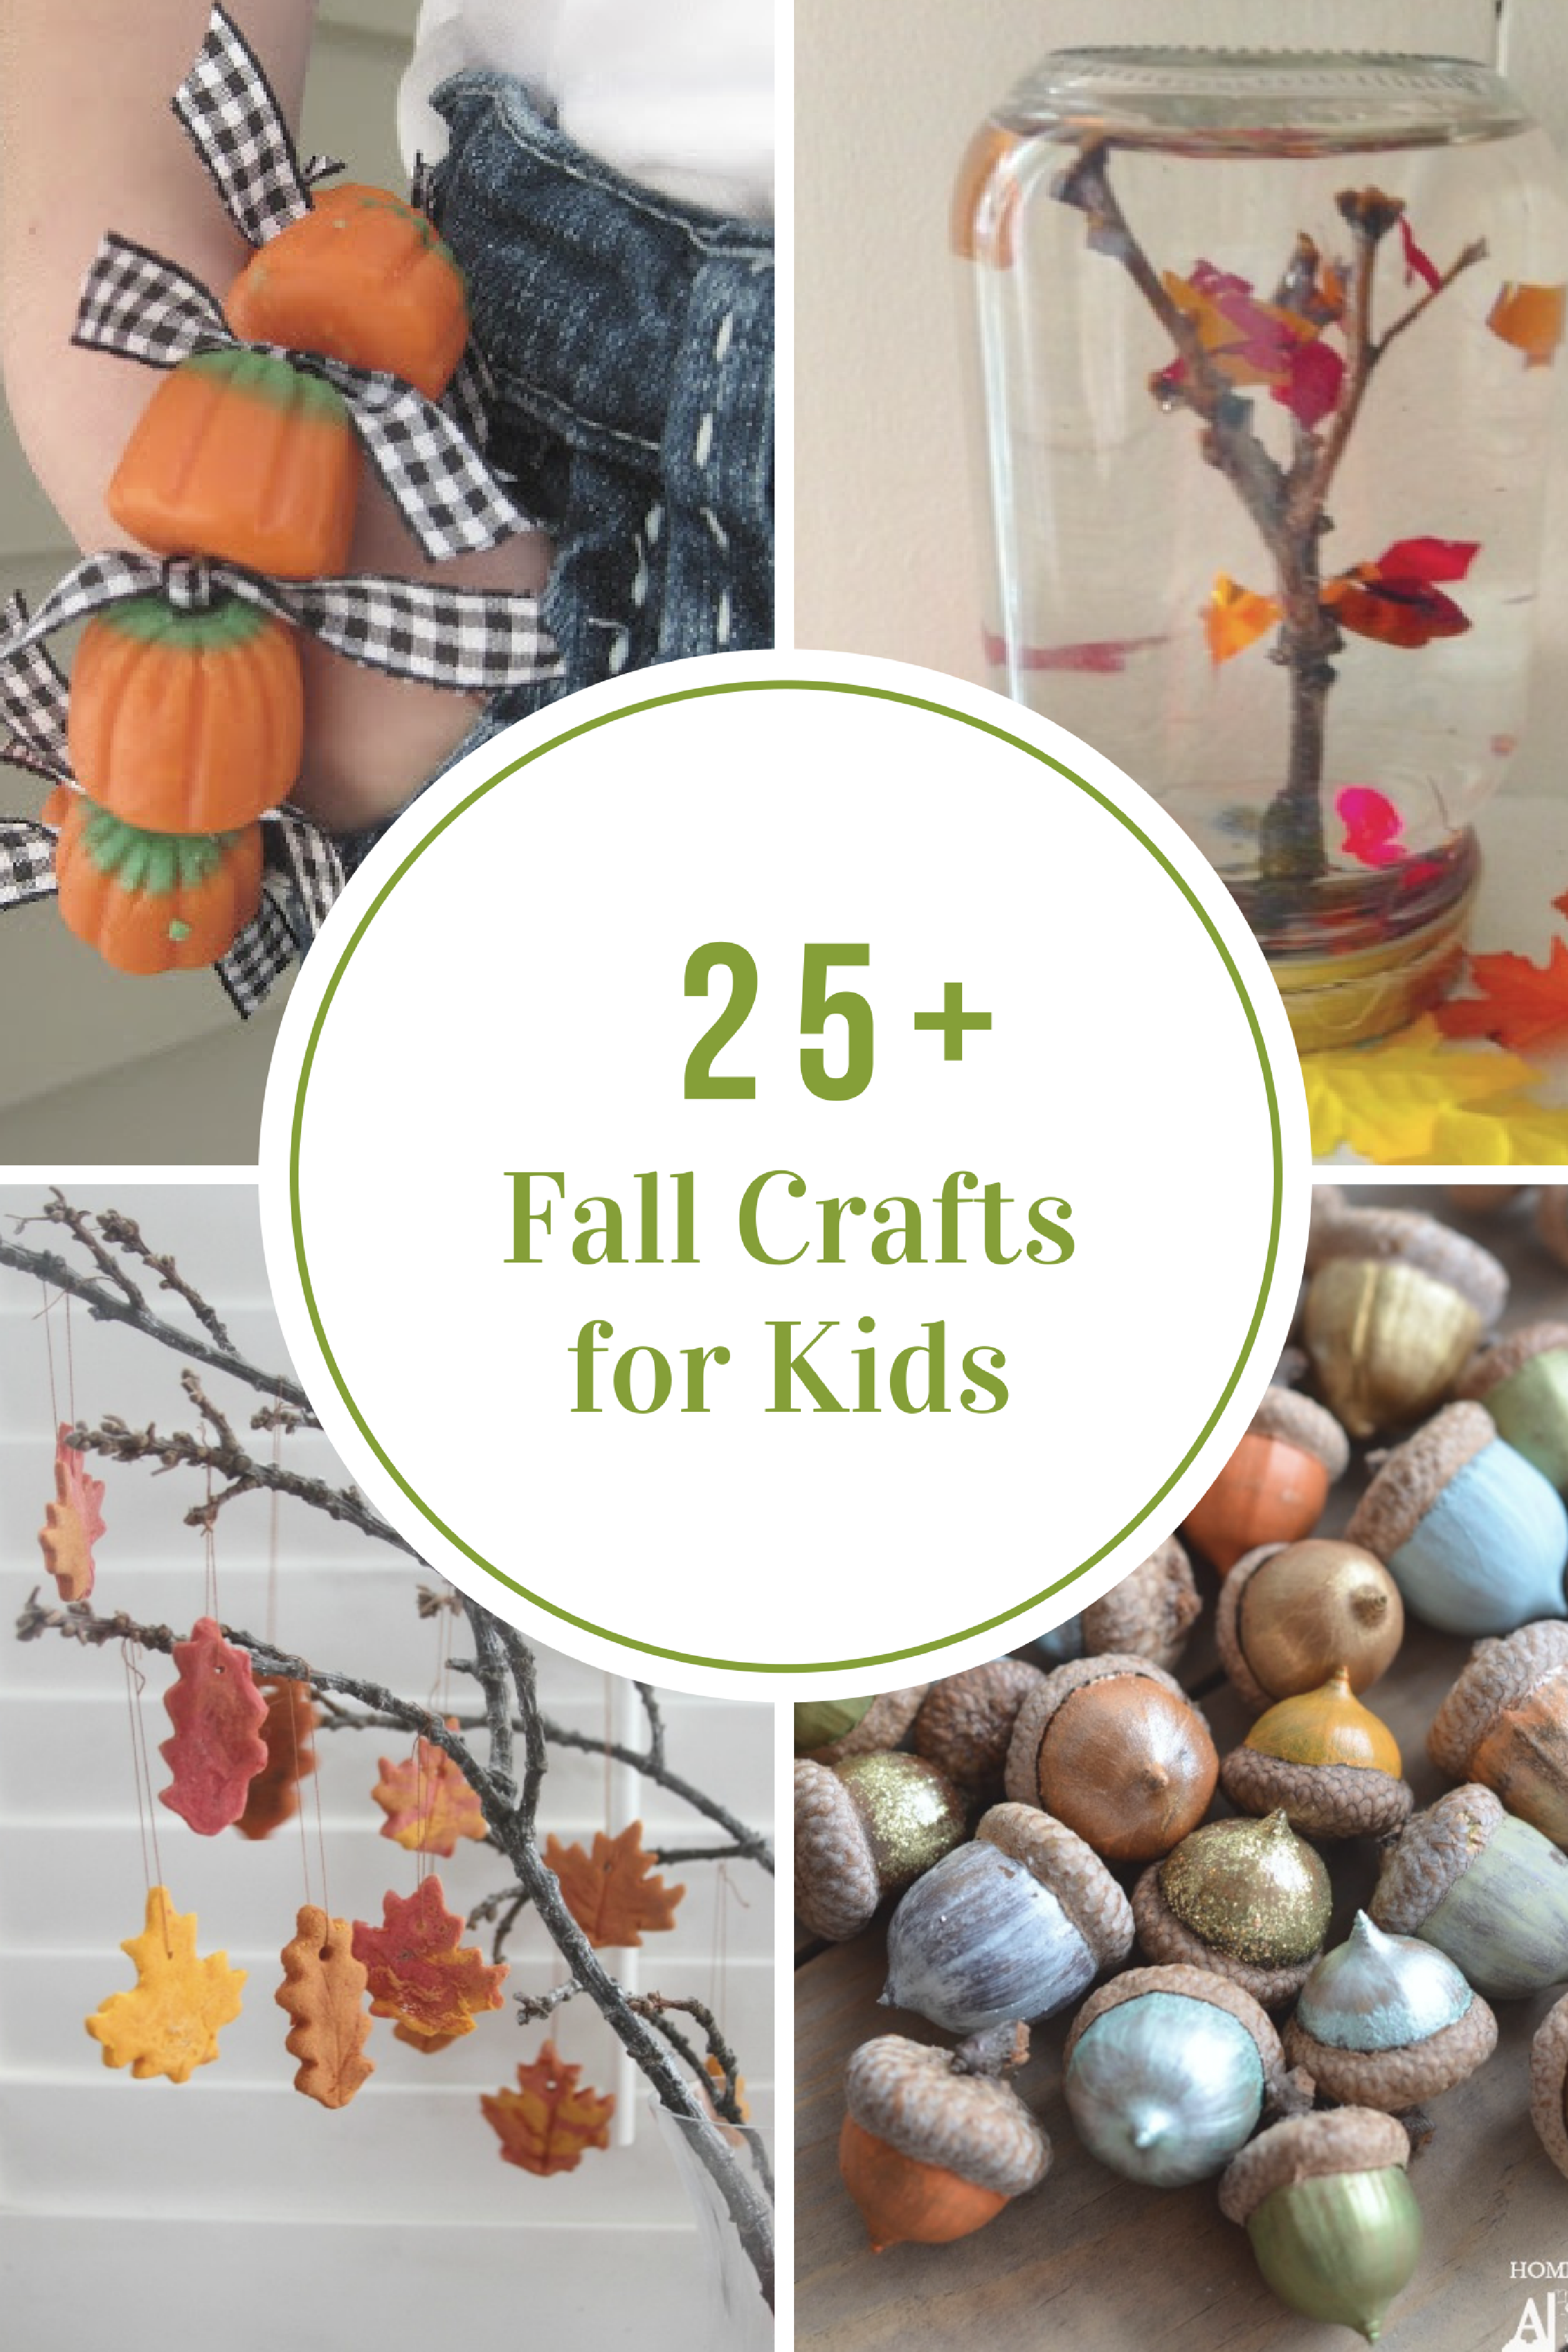 Fall Crafts for Kids - The Idea Room